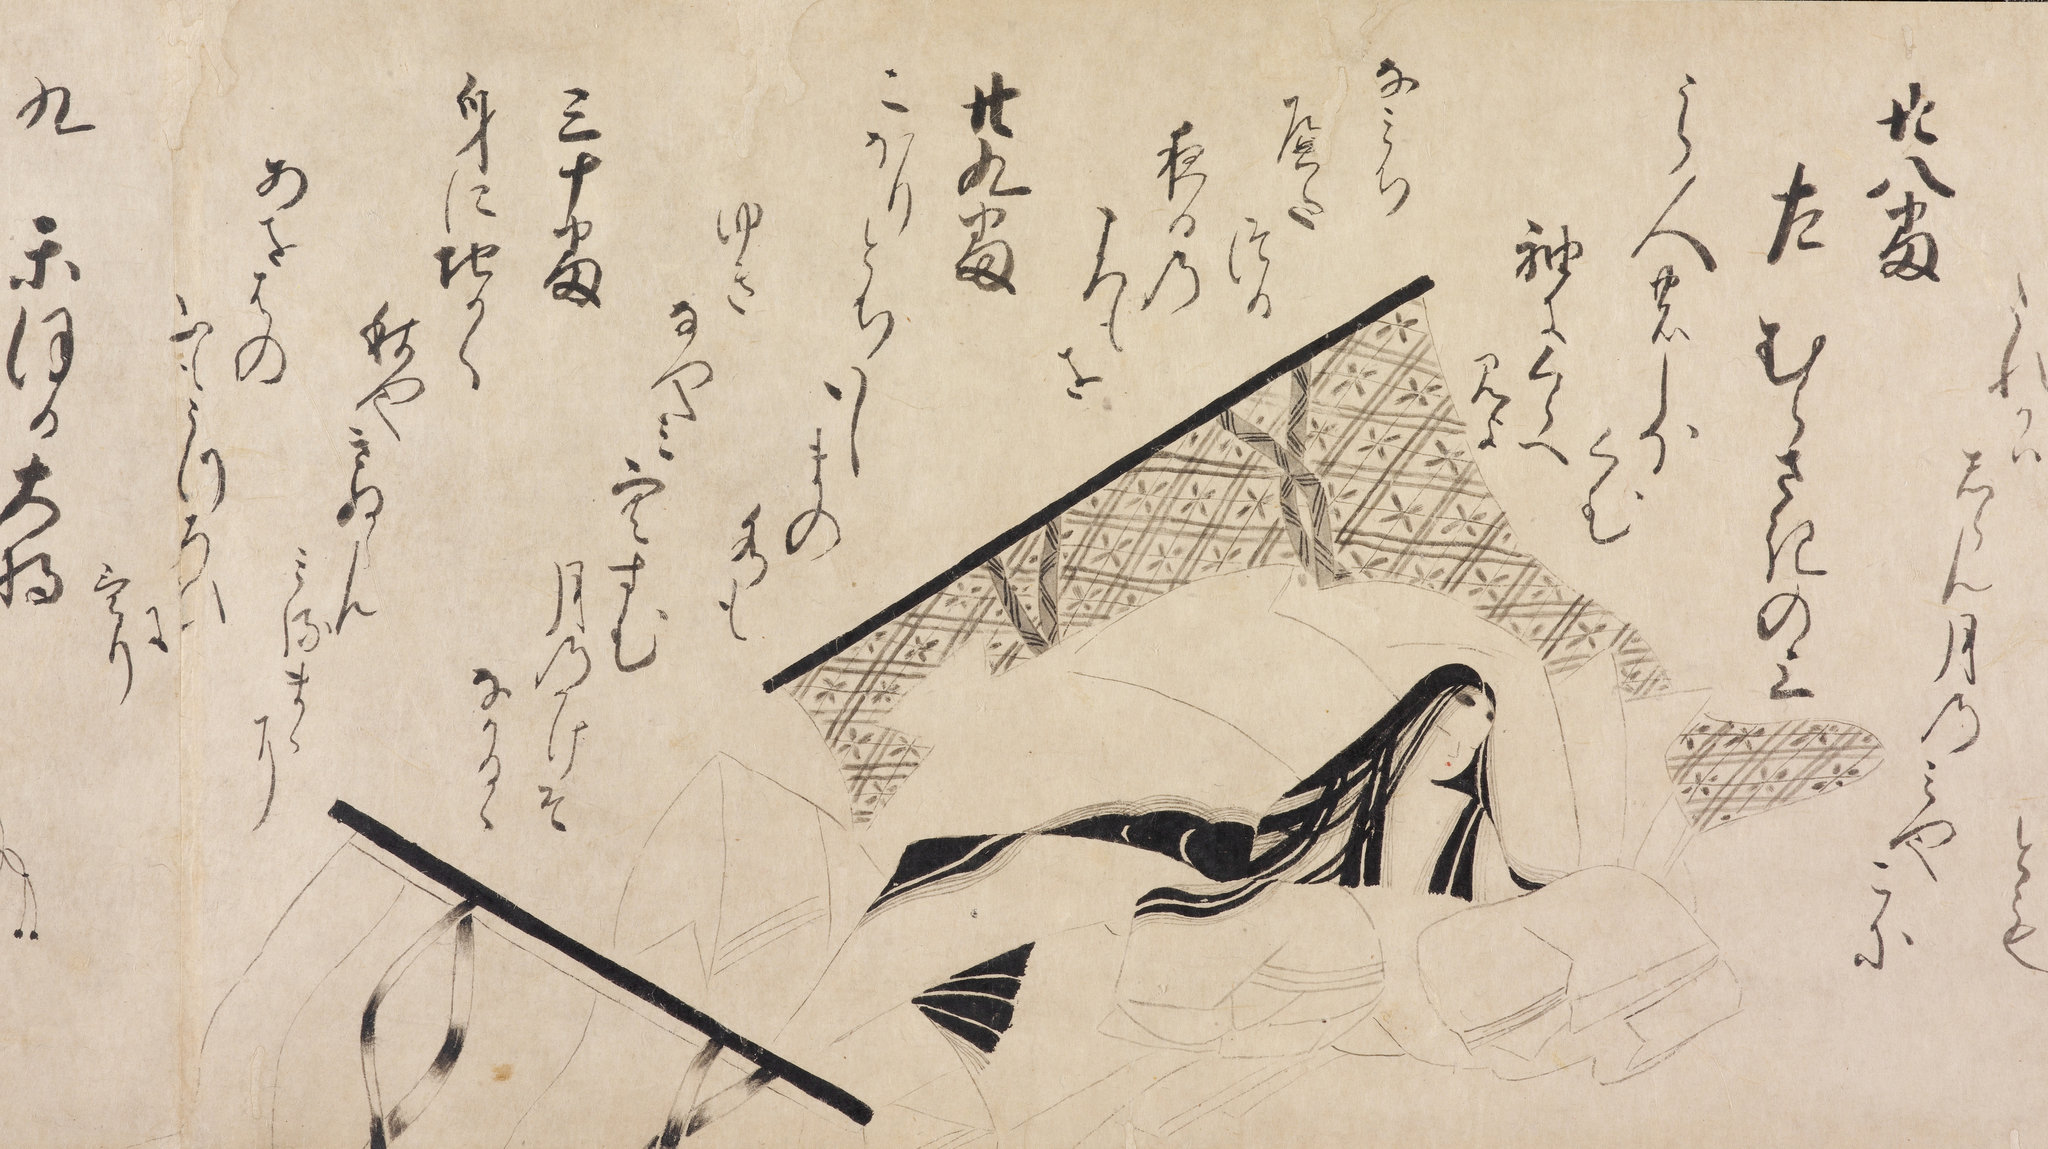 """The Genji Poetry Match,"" an ink-line handscroll by an unidentified artist, from the first half of the 16th century. Credit: John C. Weber Collection"